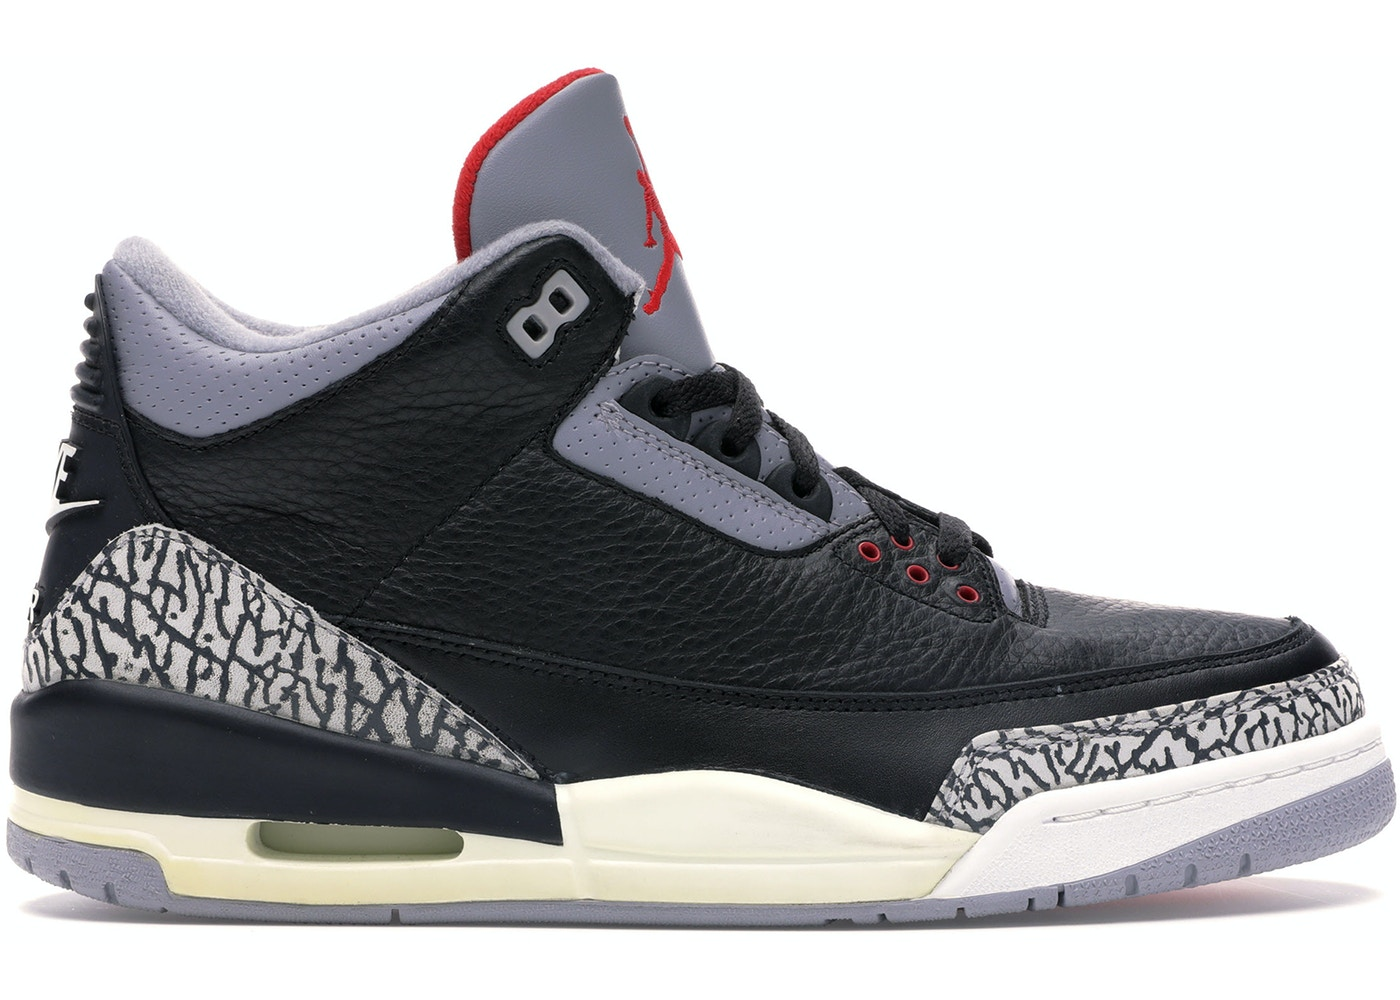 new products e28c0 26273 Jordan 3 Retro Black Cement (2001)